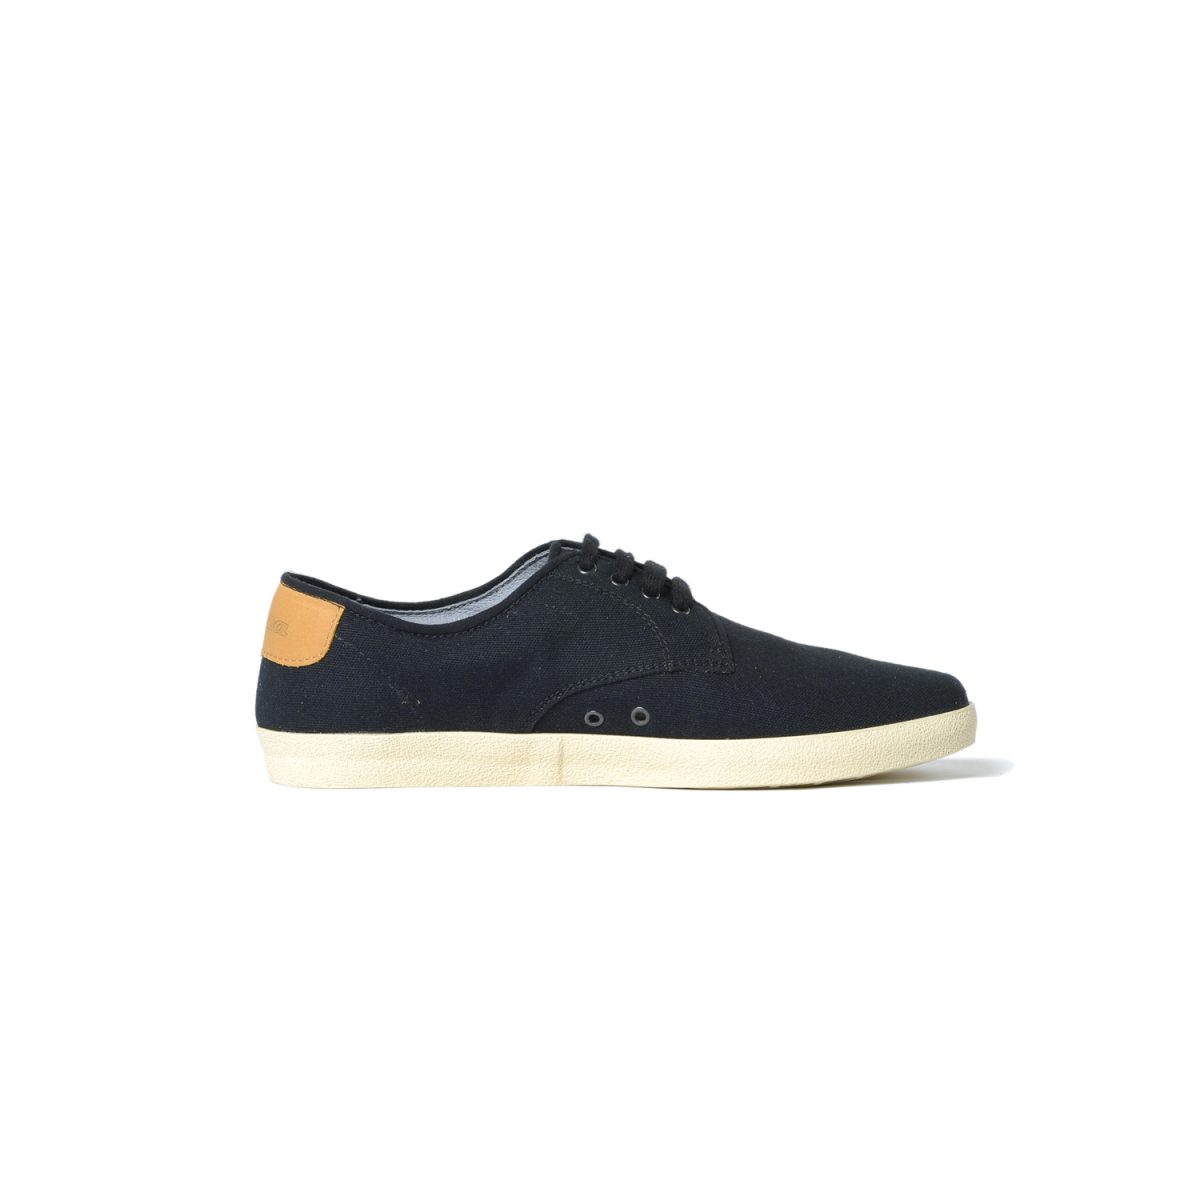 Tisza shoes - City - Black-tobacco